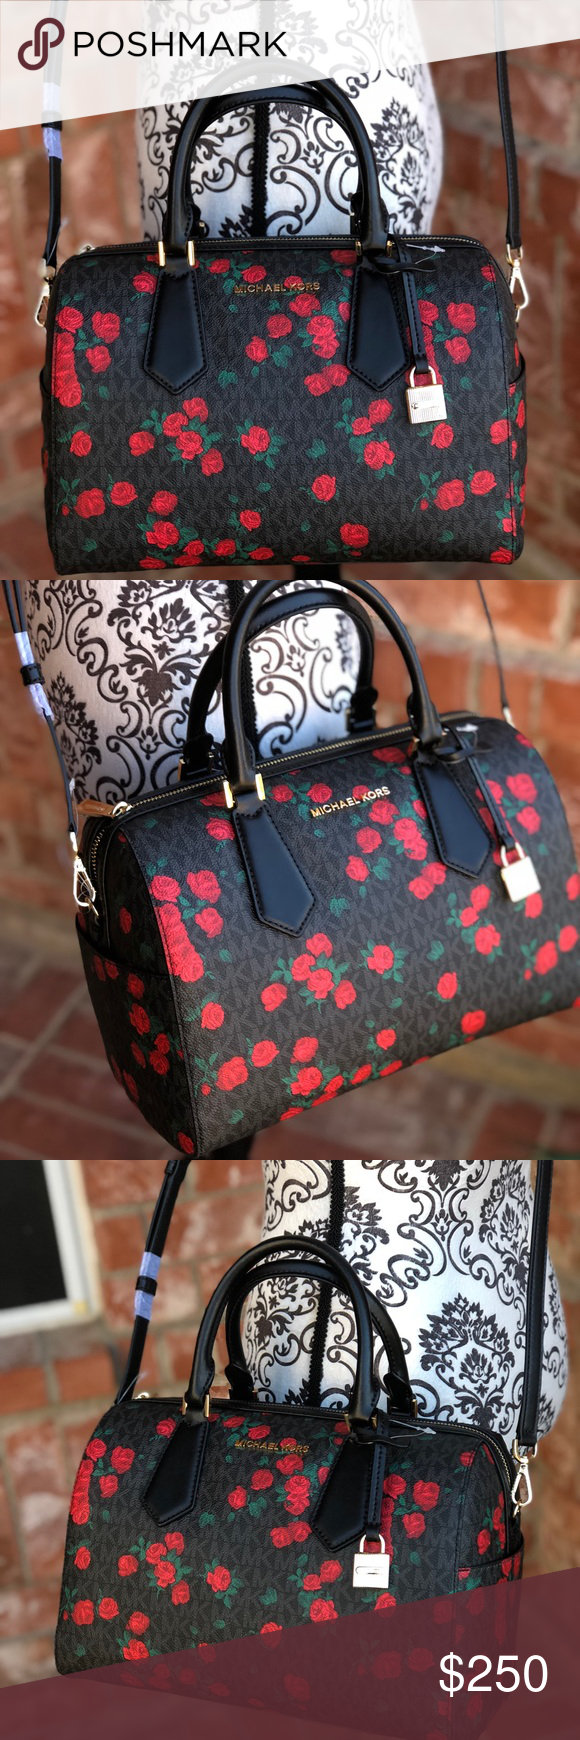 82ffad5a8321b3 Michael kors Hayes Large duffle bag floral black 100 % authentic guaranteed Michael  Kors Hayes Large Duffel Satchel Crossbody Black Red Floral PVC Coated ...